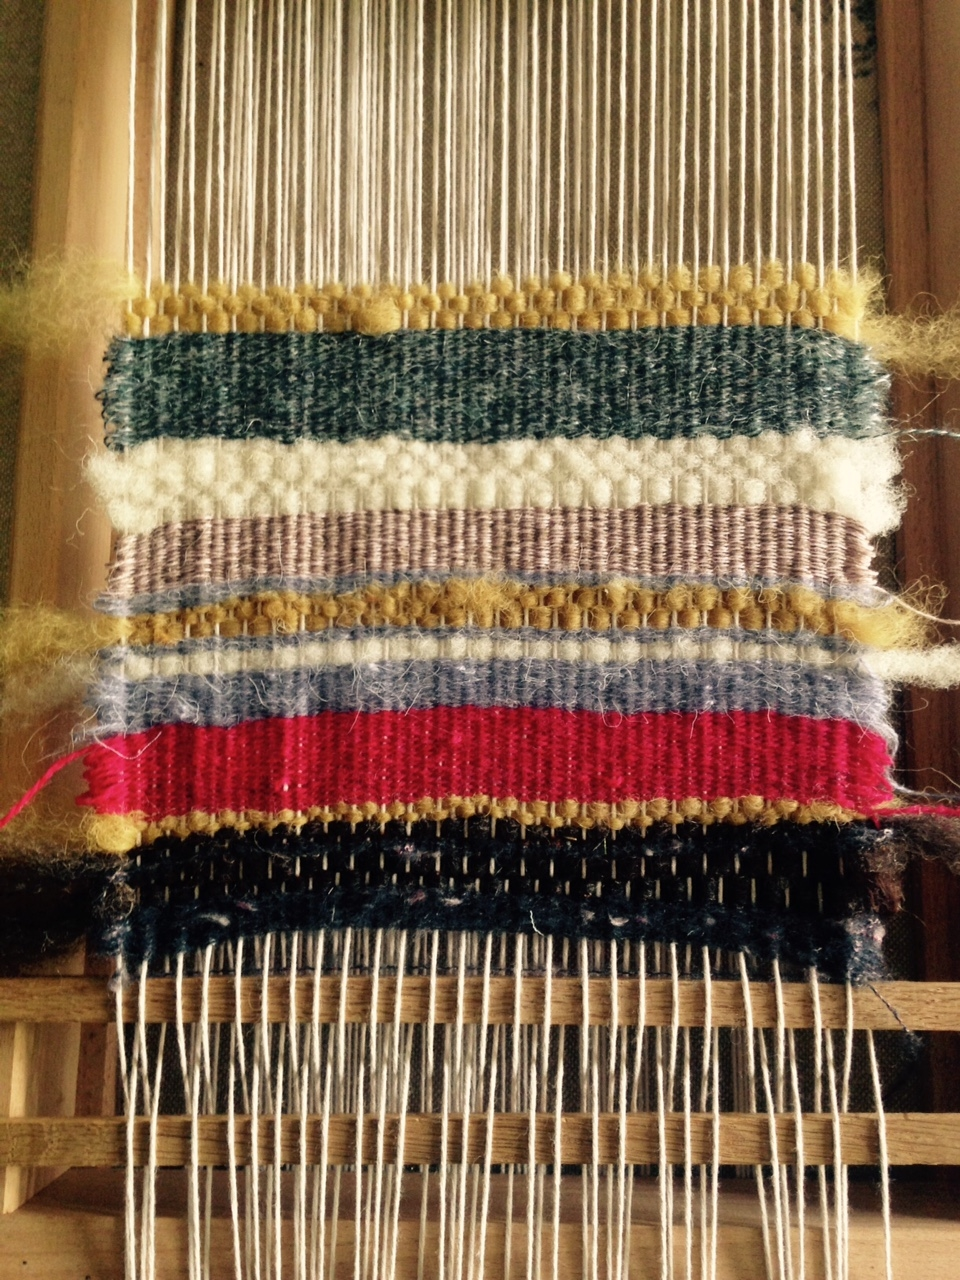 Introduction to Weaving Workshop: Coming Soon